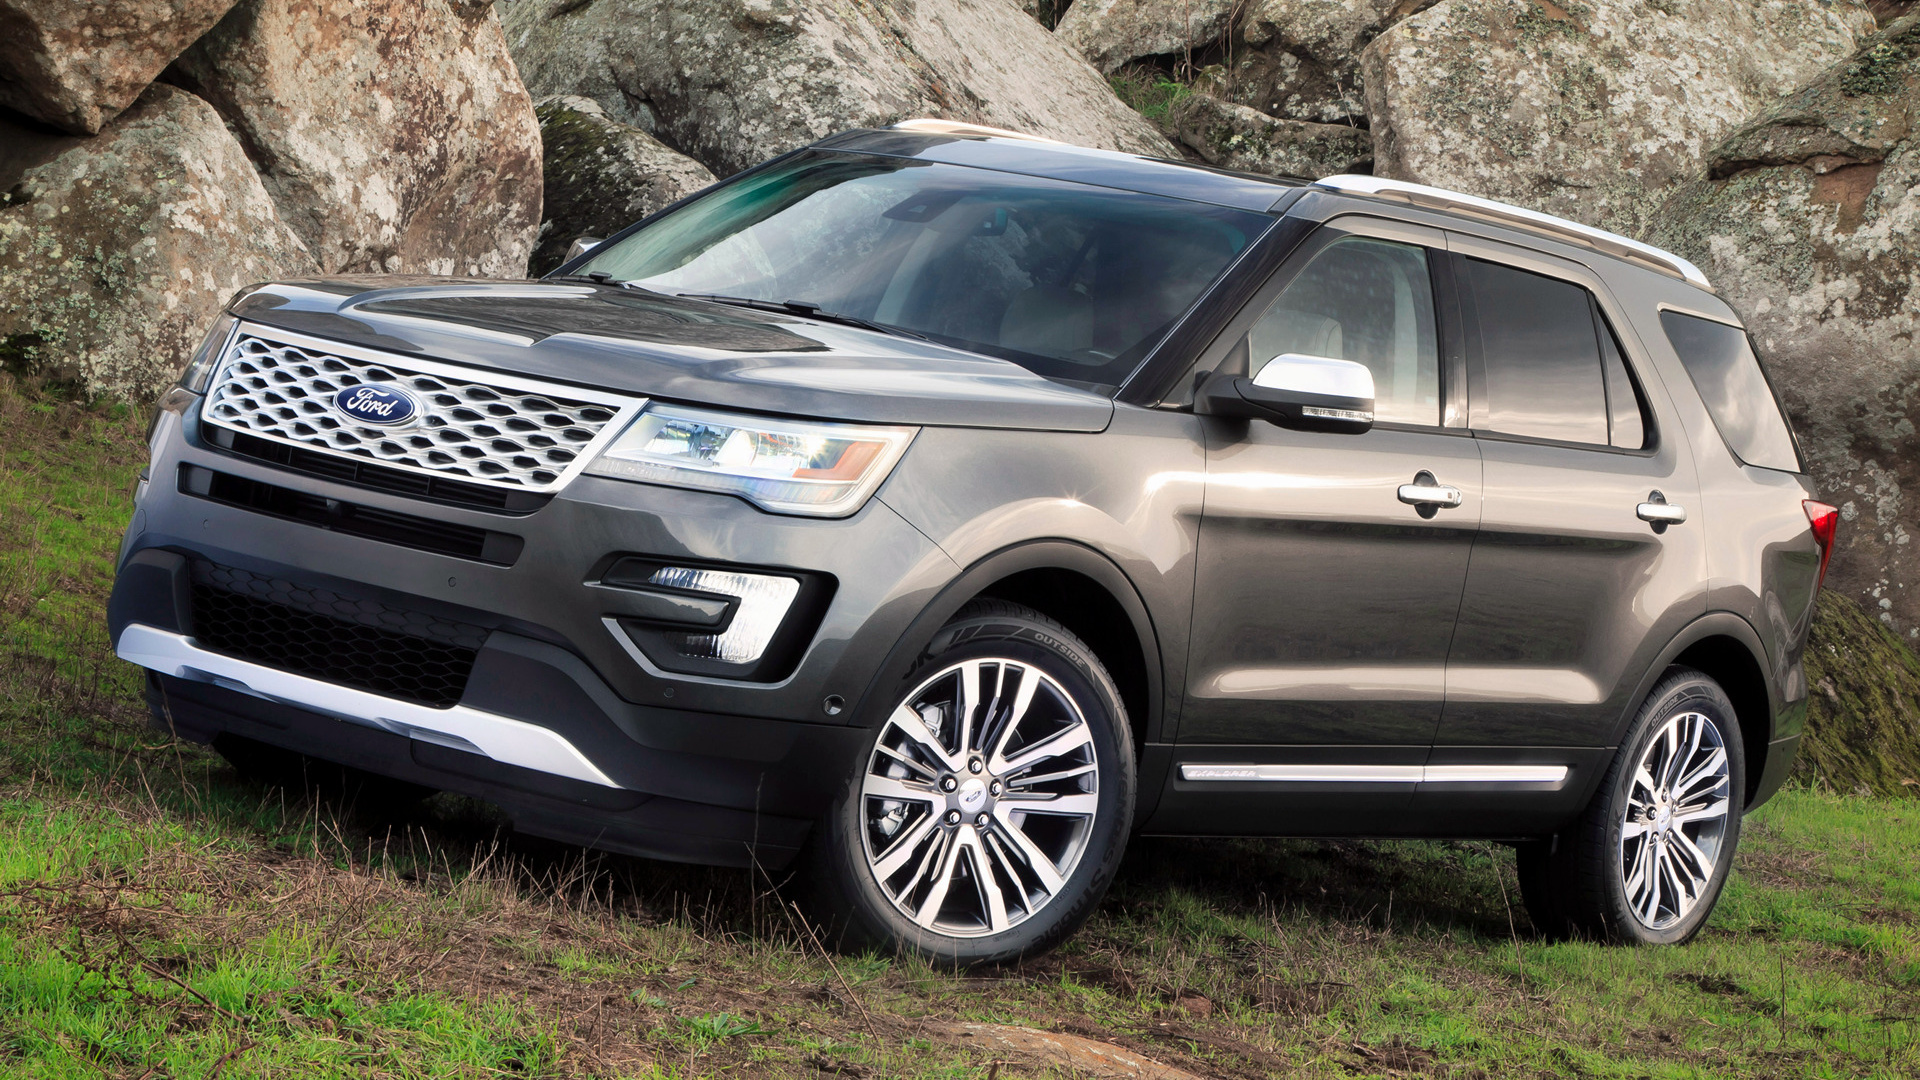 rover ford a looking of sam platinum s like range thoughts more explorer